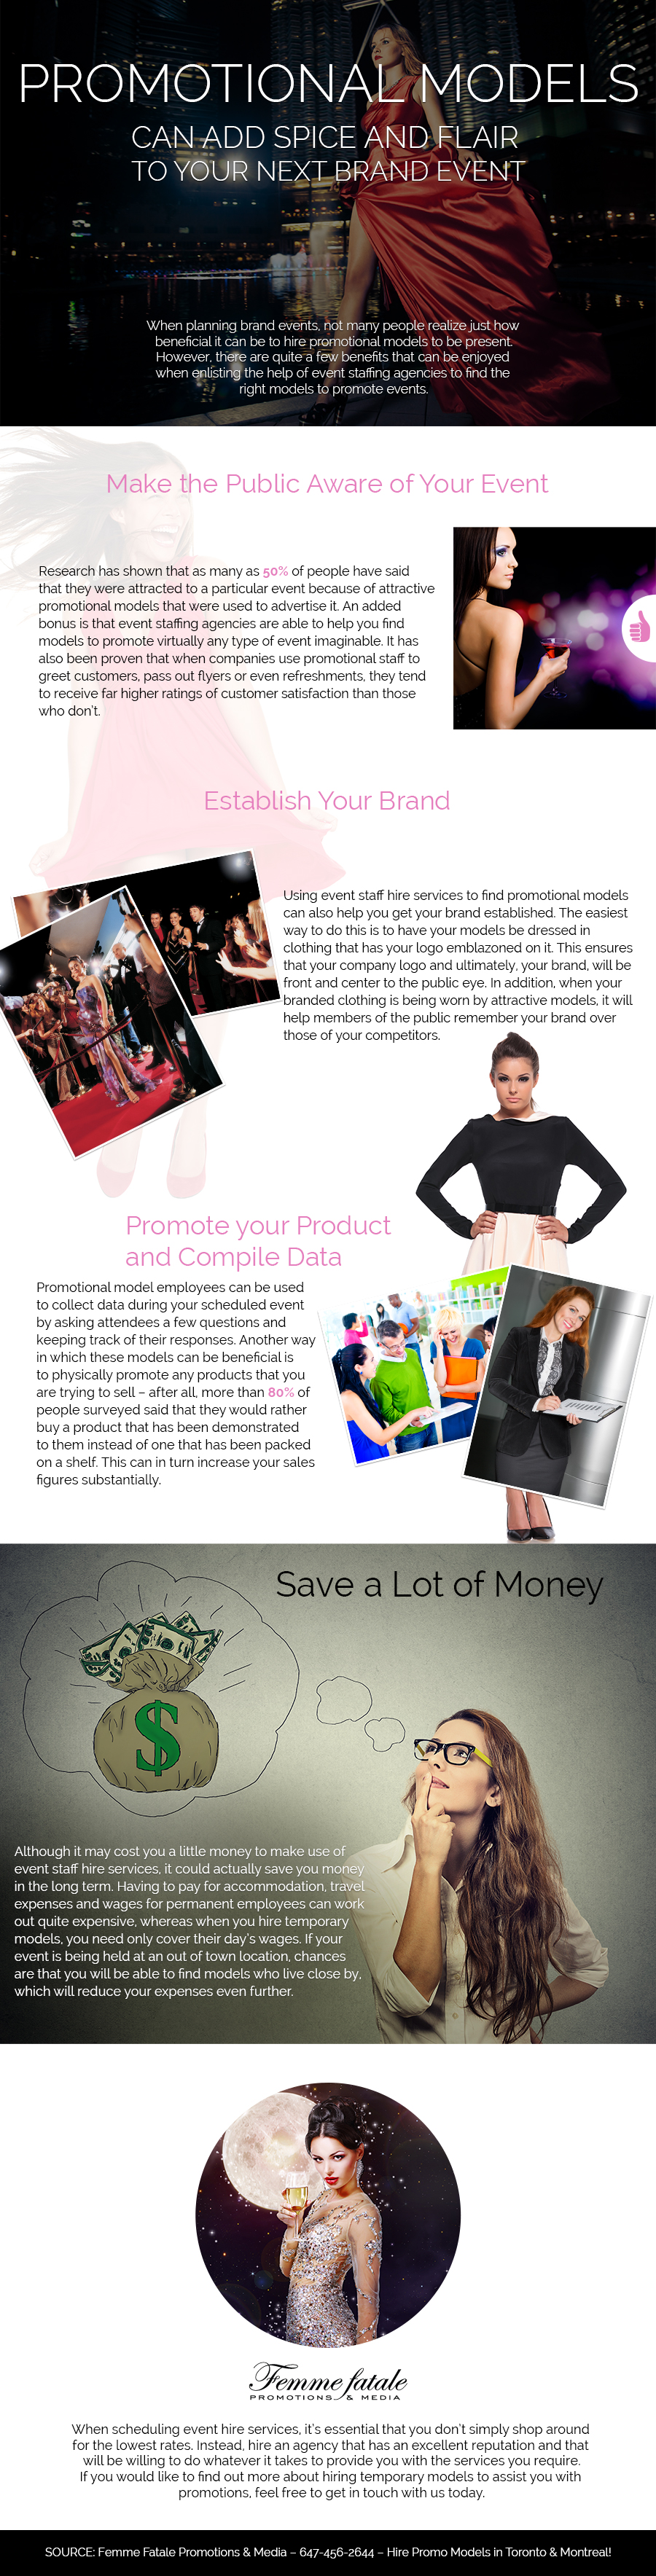 Promotional Models Can Add Spice and Flair to Your Next Brand Event